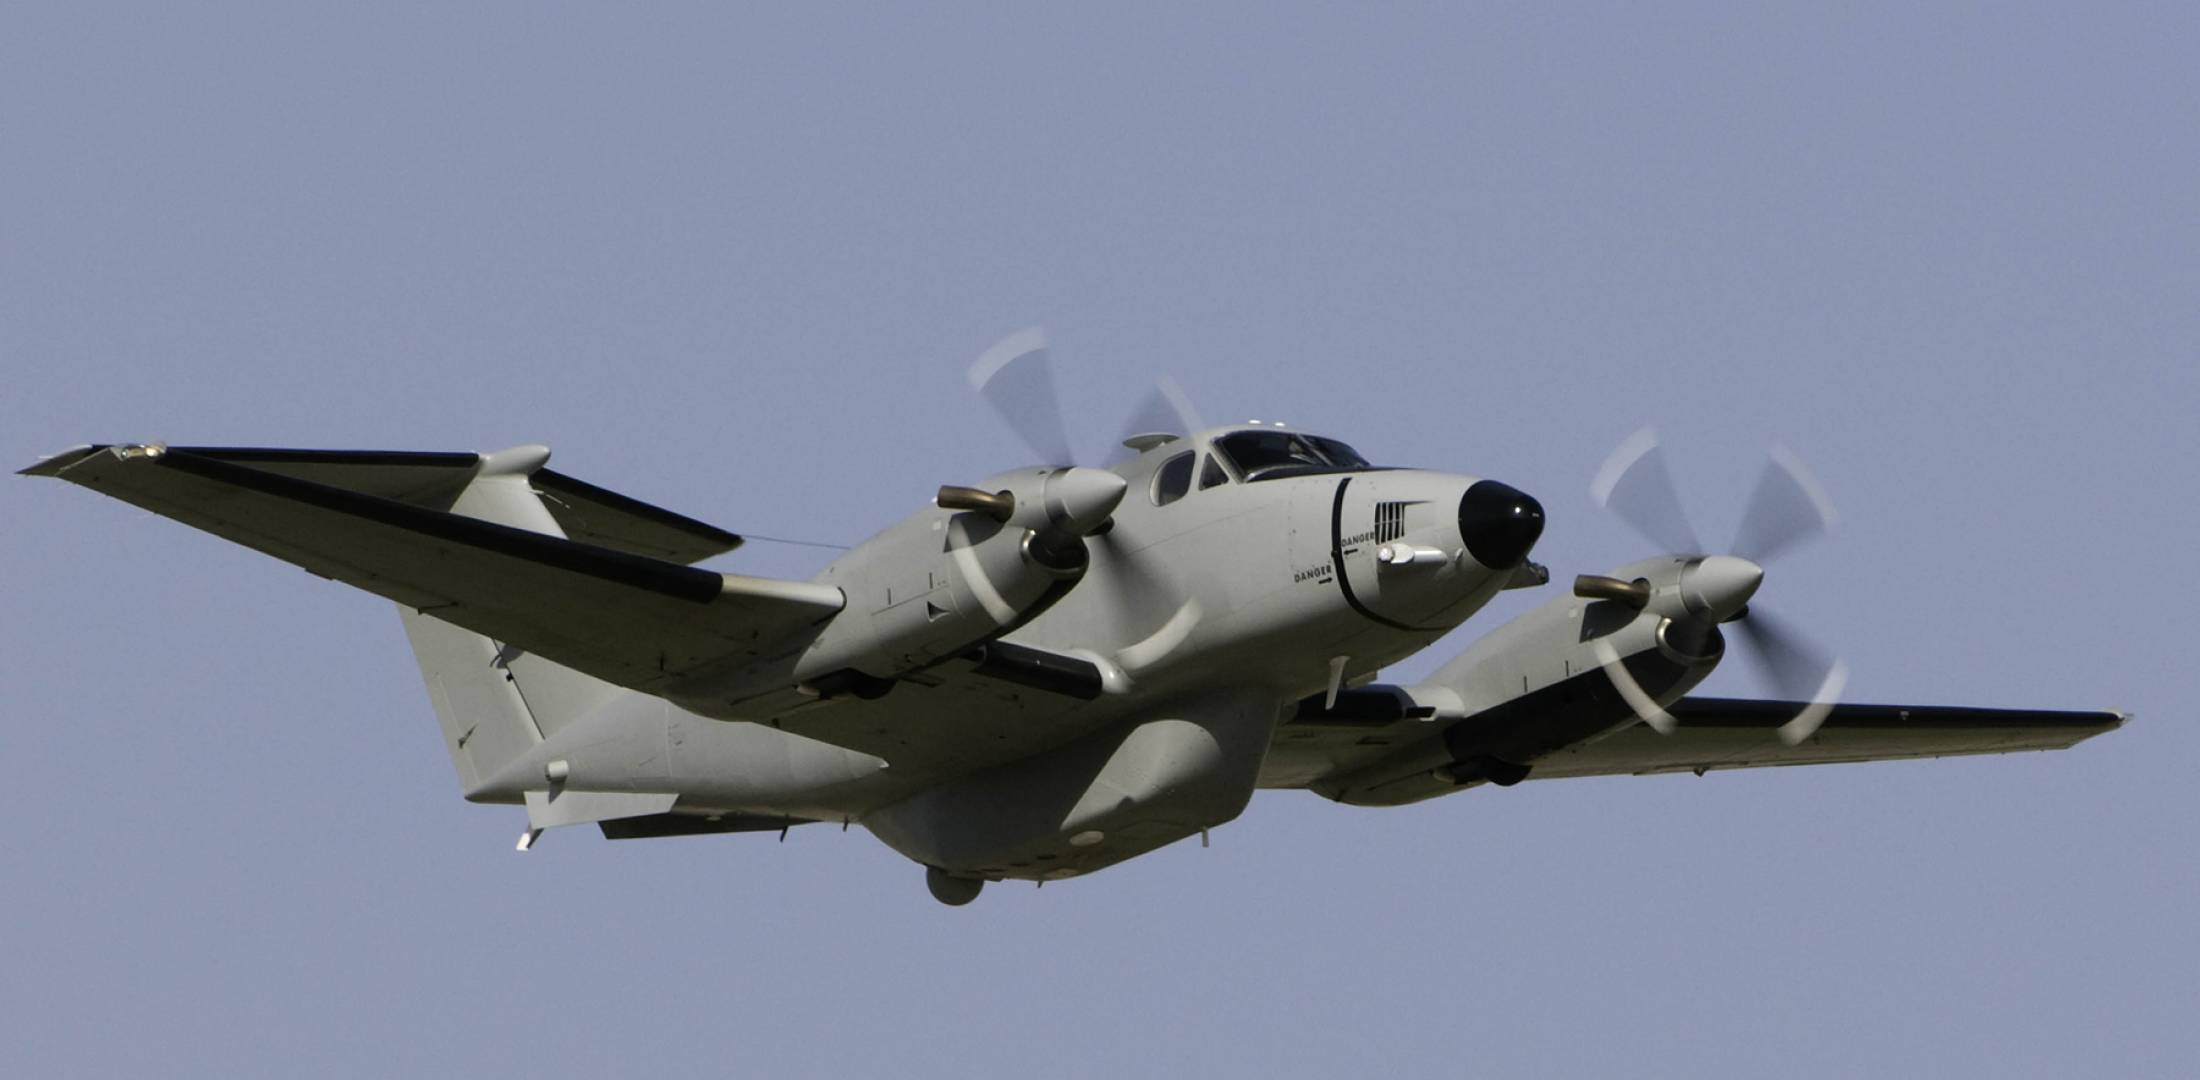 Army Special Missions King Air 300